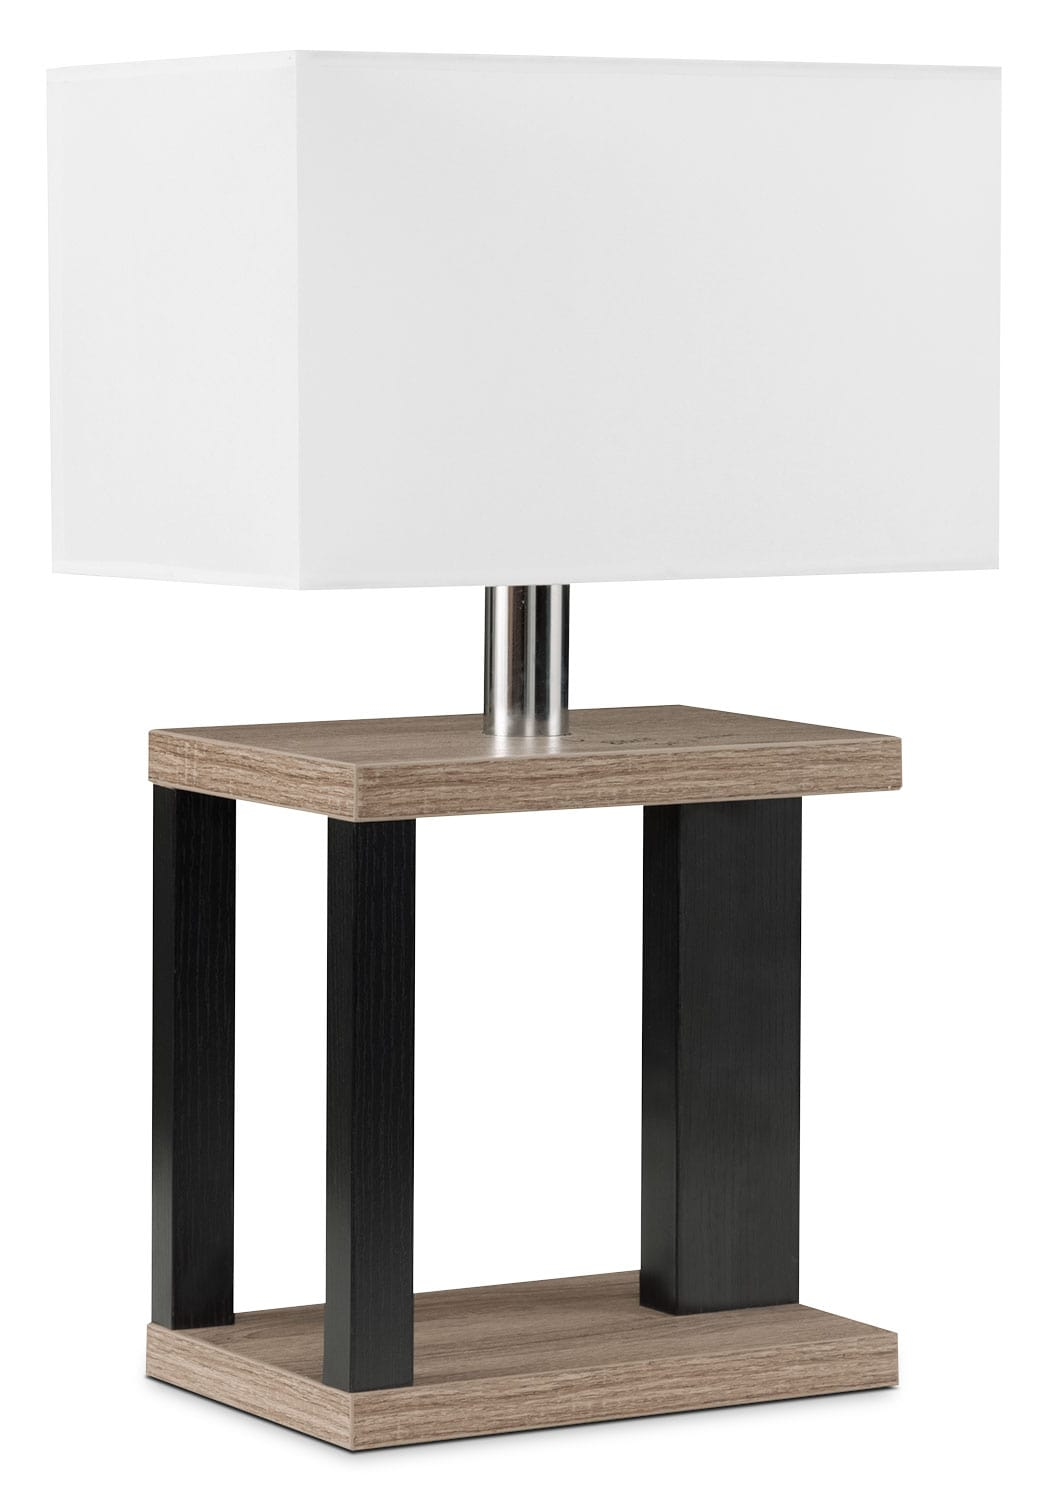 Home Accessories - Dark Taupe Table Lamp with Black Accents and White Shade